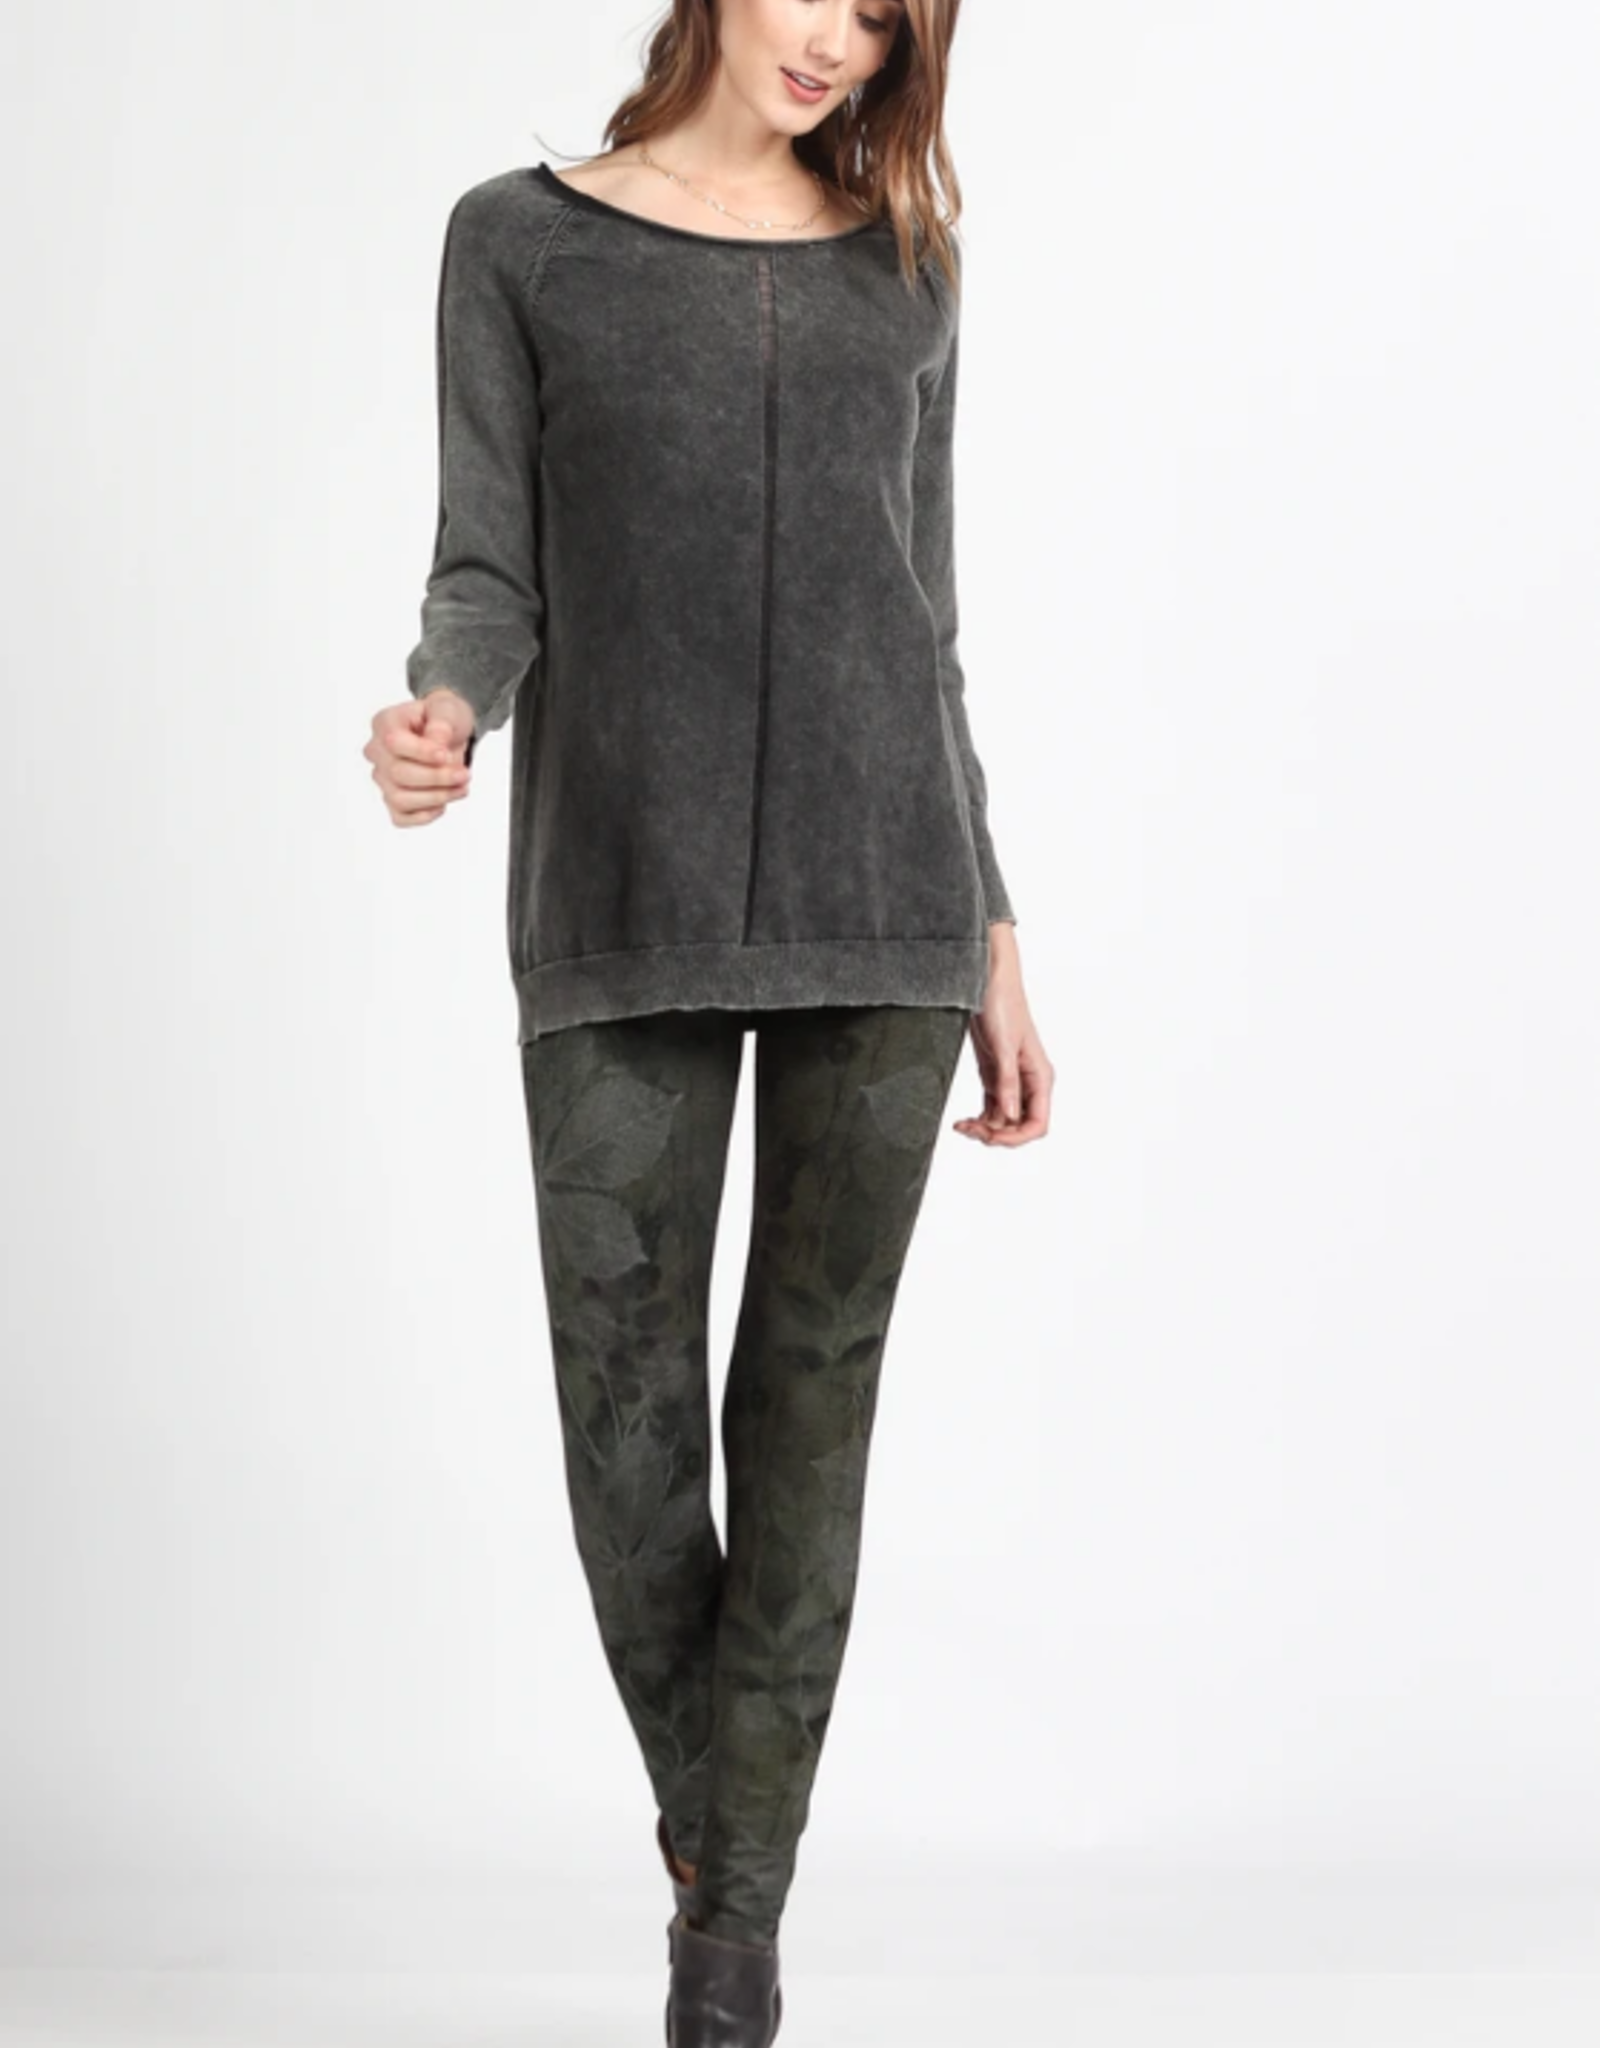 M Rena Mineral Wash Sweater with Open Knit Detail